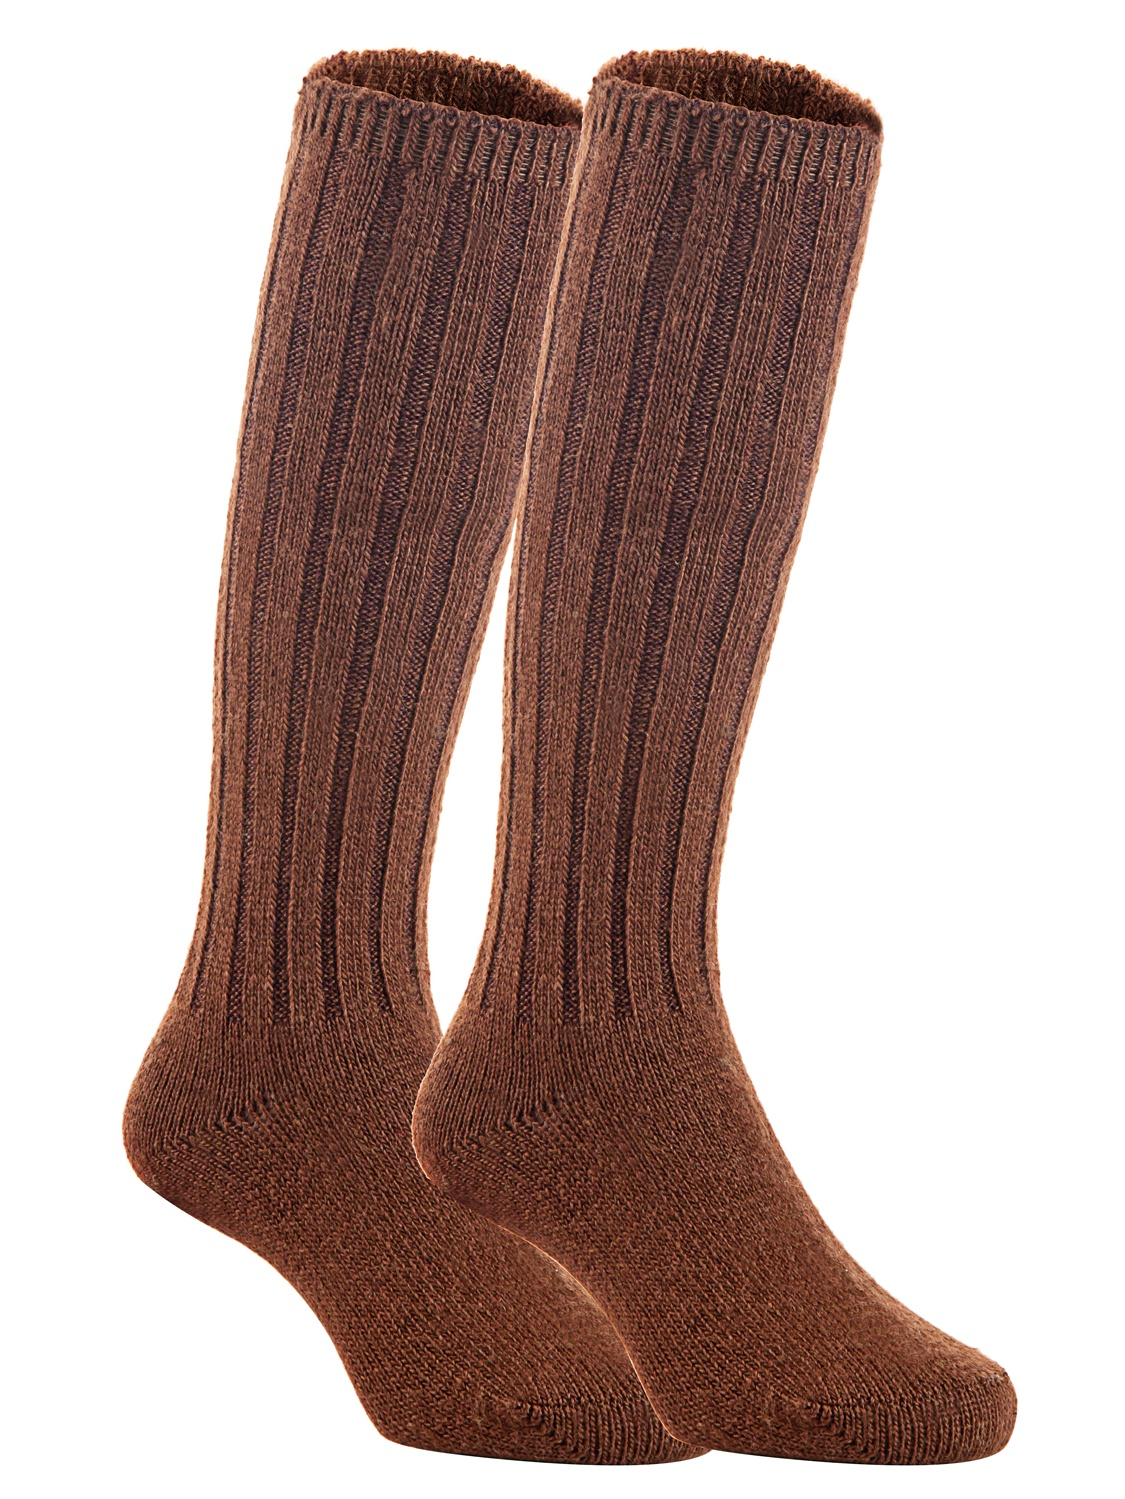 Lian Style Unisex Baby Children 4 Pairs Knee-high Wool Boot Blend Boot Socks Size 4-6Y(Navy)